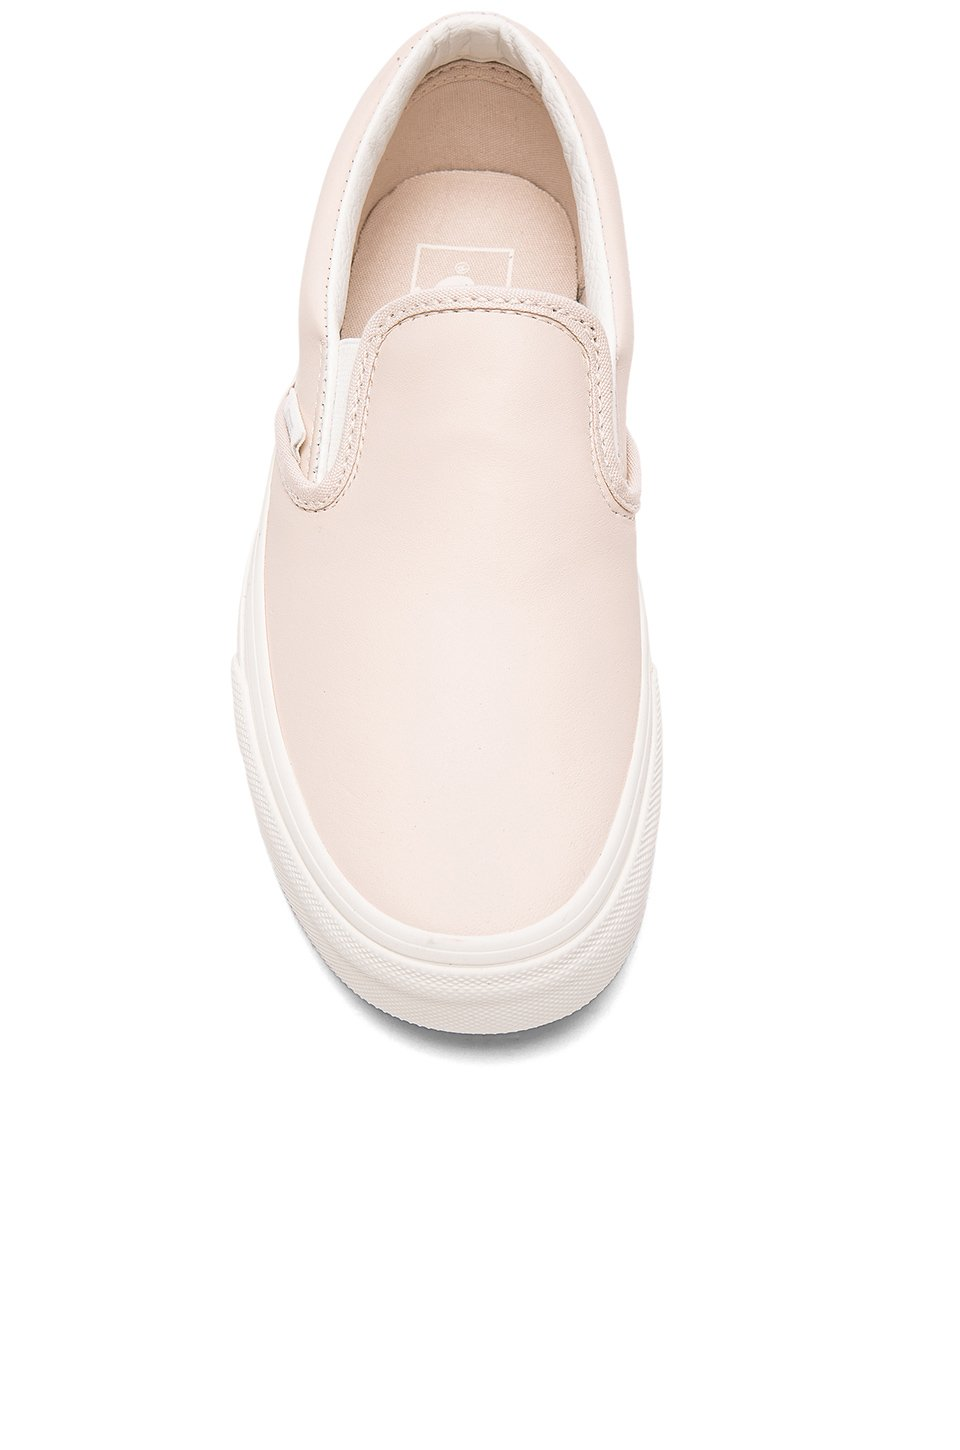 new photos classic fit best selling vans slip ons pink leather